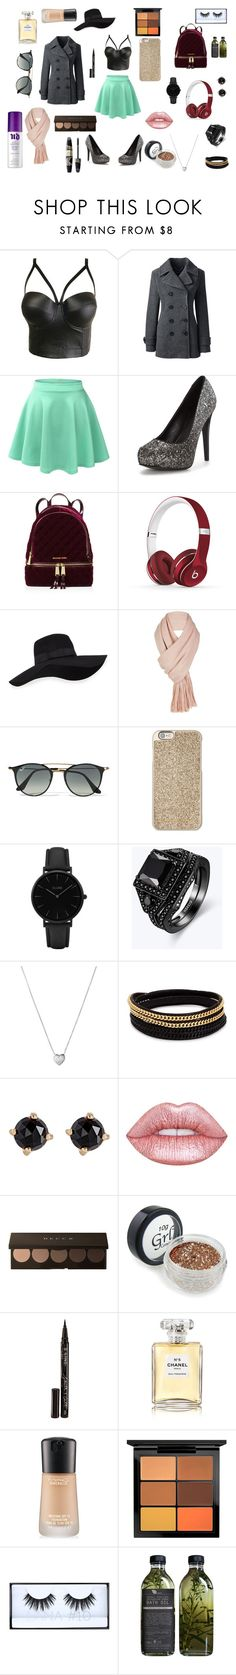 """""""Dark But Lighter"""" by emma-rilau on Polyvore featuring Lands' End, LE3NO, MICHAEL Michael Kors, Beats by Dr. Dre, San Diego Hat Co., Free People, Ray-Ban, Michael Kors, CLUSE and Links of London"""